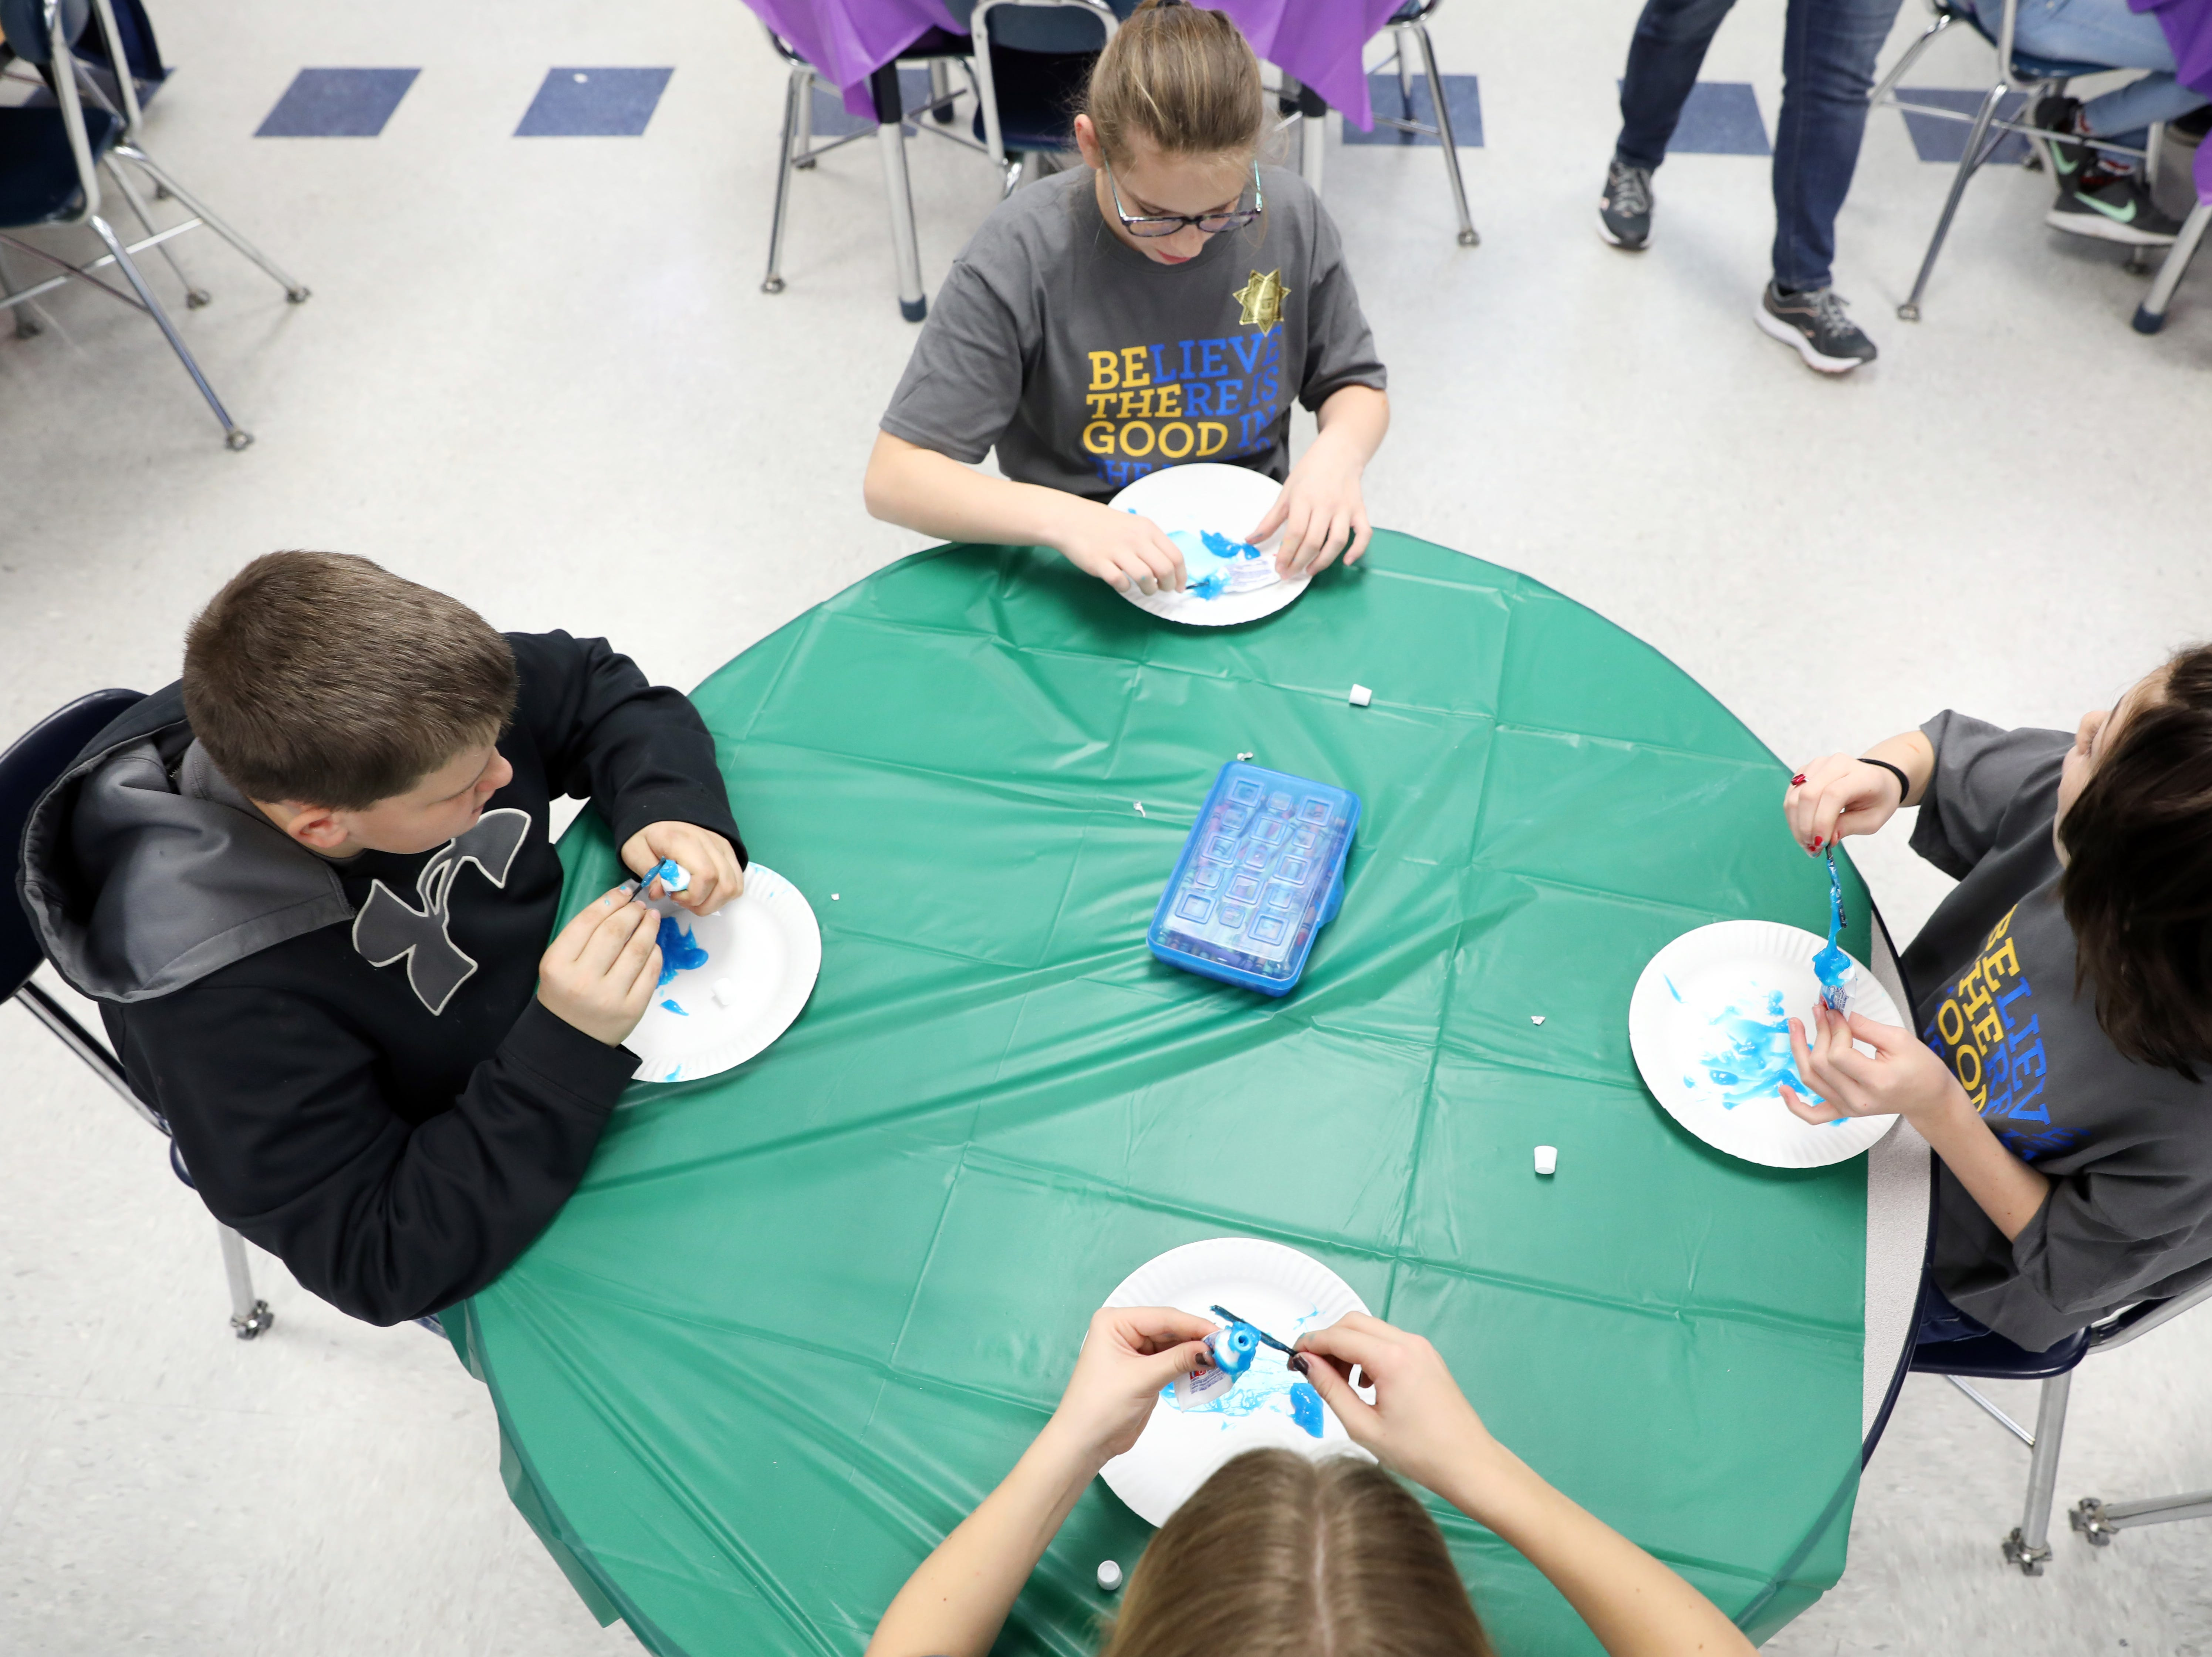 Students try to get toothpaste back in the tube during Roseville Elementary School's dude. be nice program.